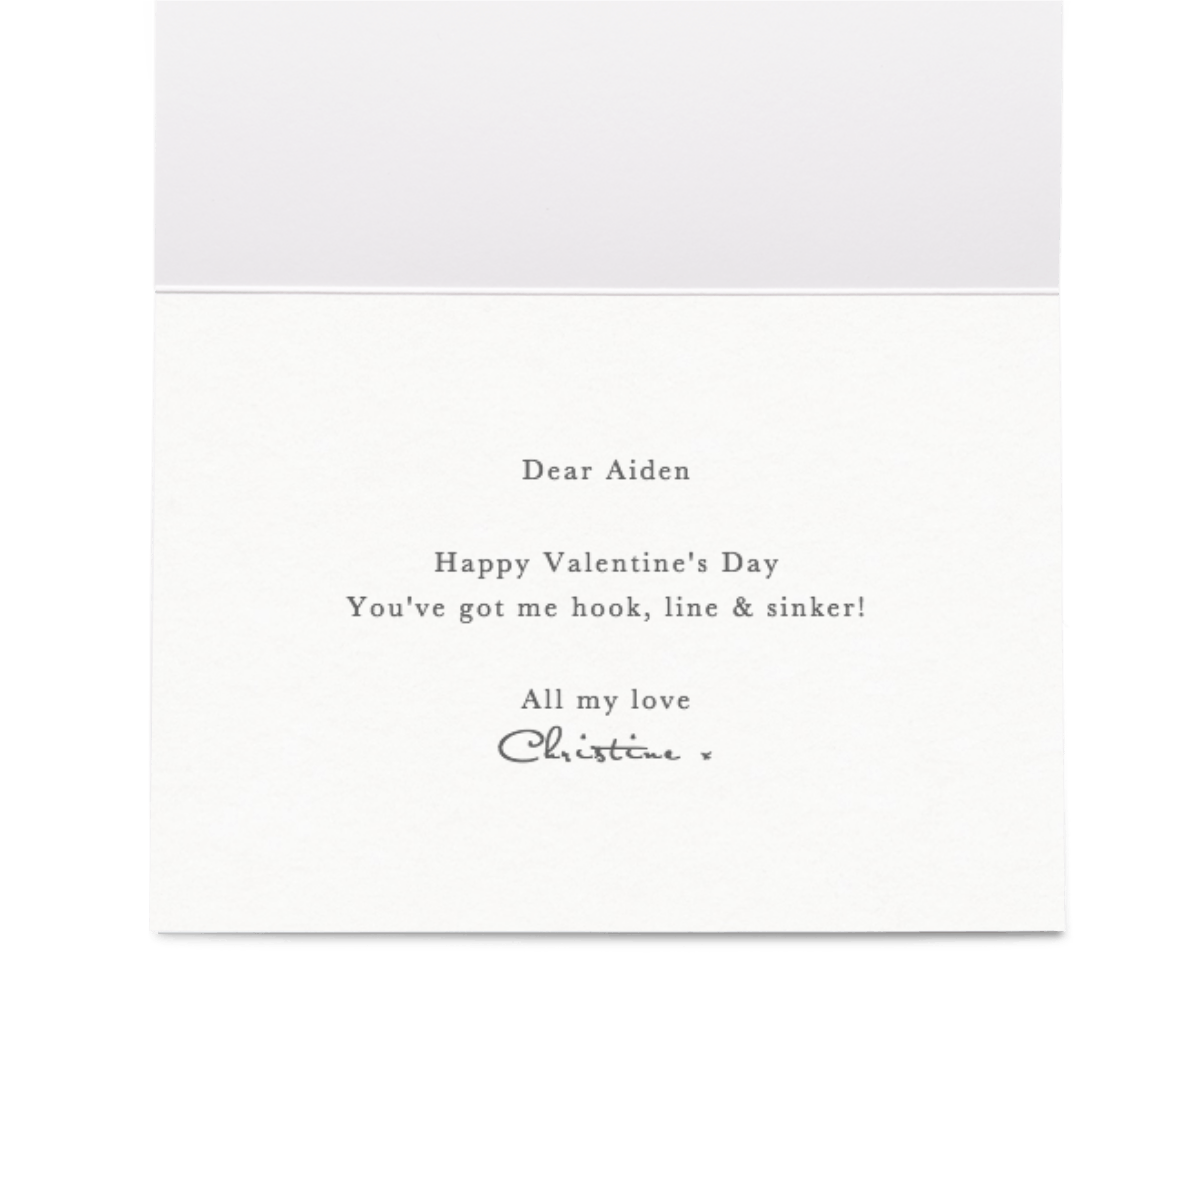 Https%3a%2f%2fwww.papier.com%2fproduct image%2f61801%2f20%2fahoy there valentine 14670 inside 1547811694.png?ixlib=rb 1.1